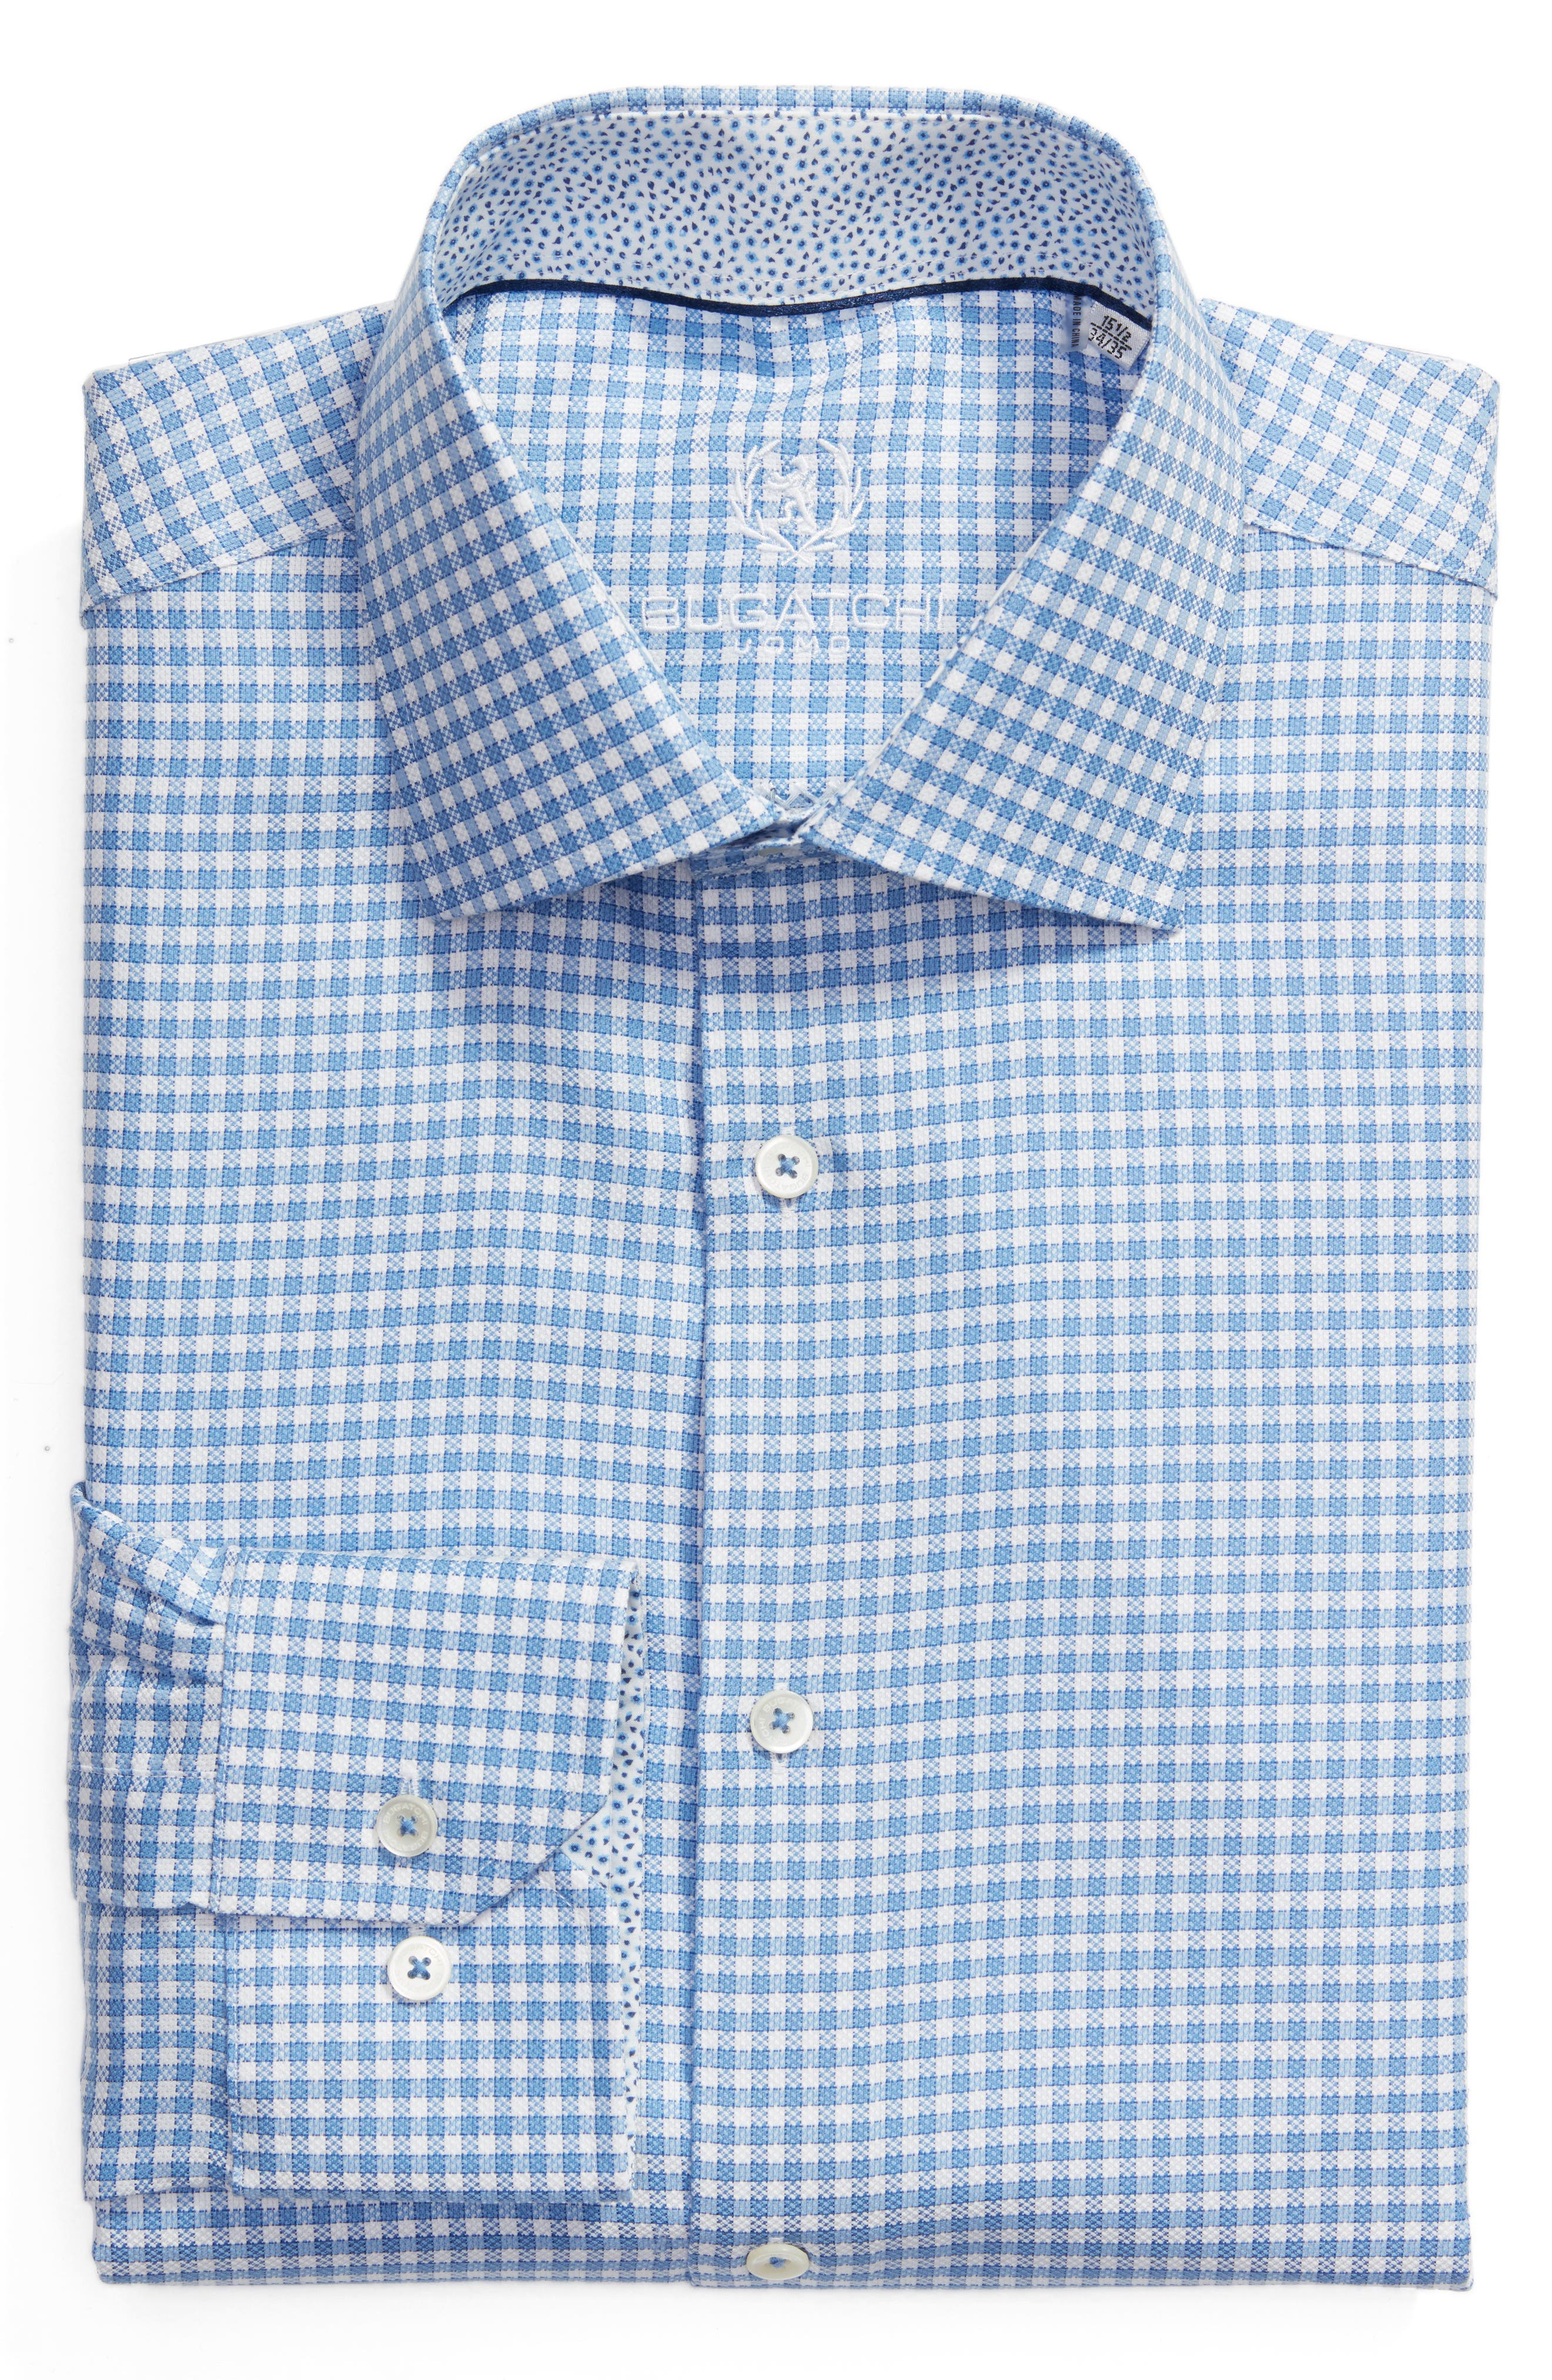 Trim Fit Check Dress Shirt,                             Main thumbnail 1, color,                             Sky